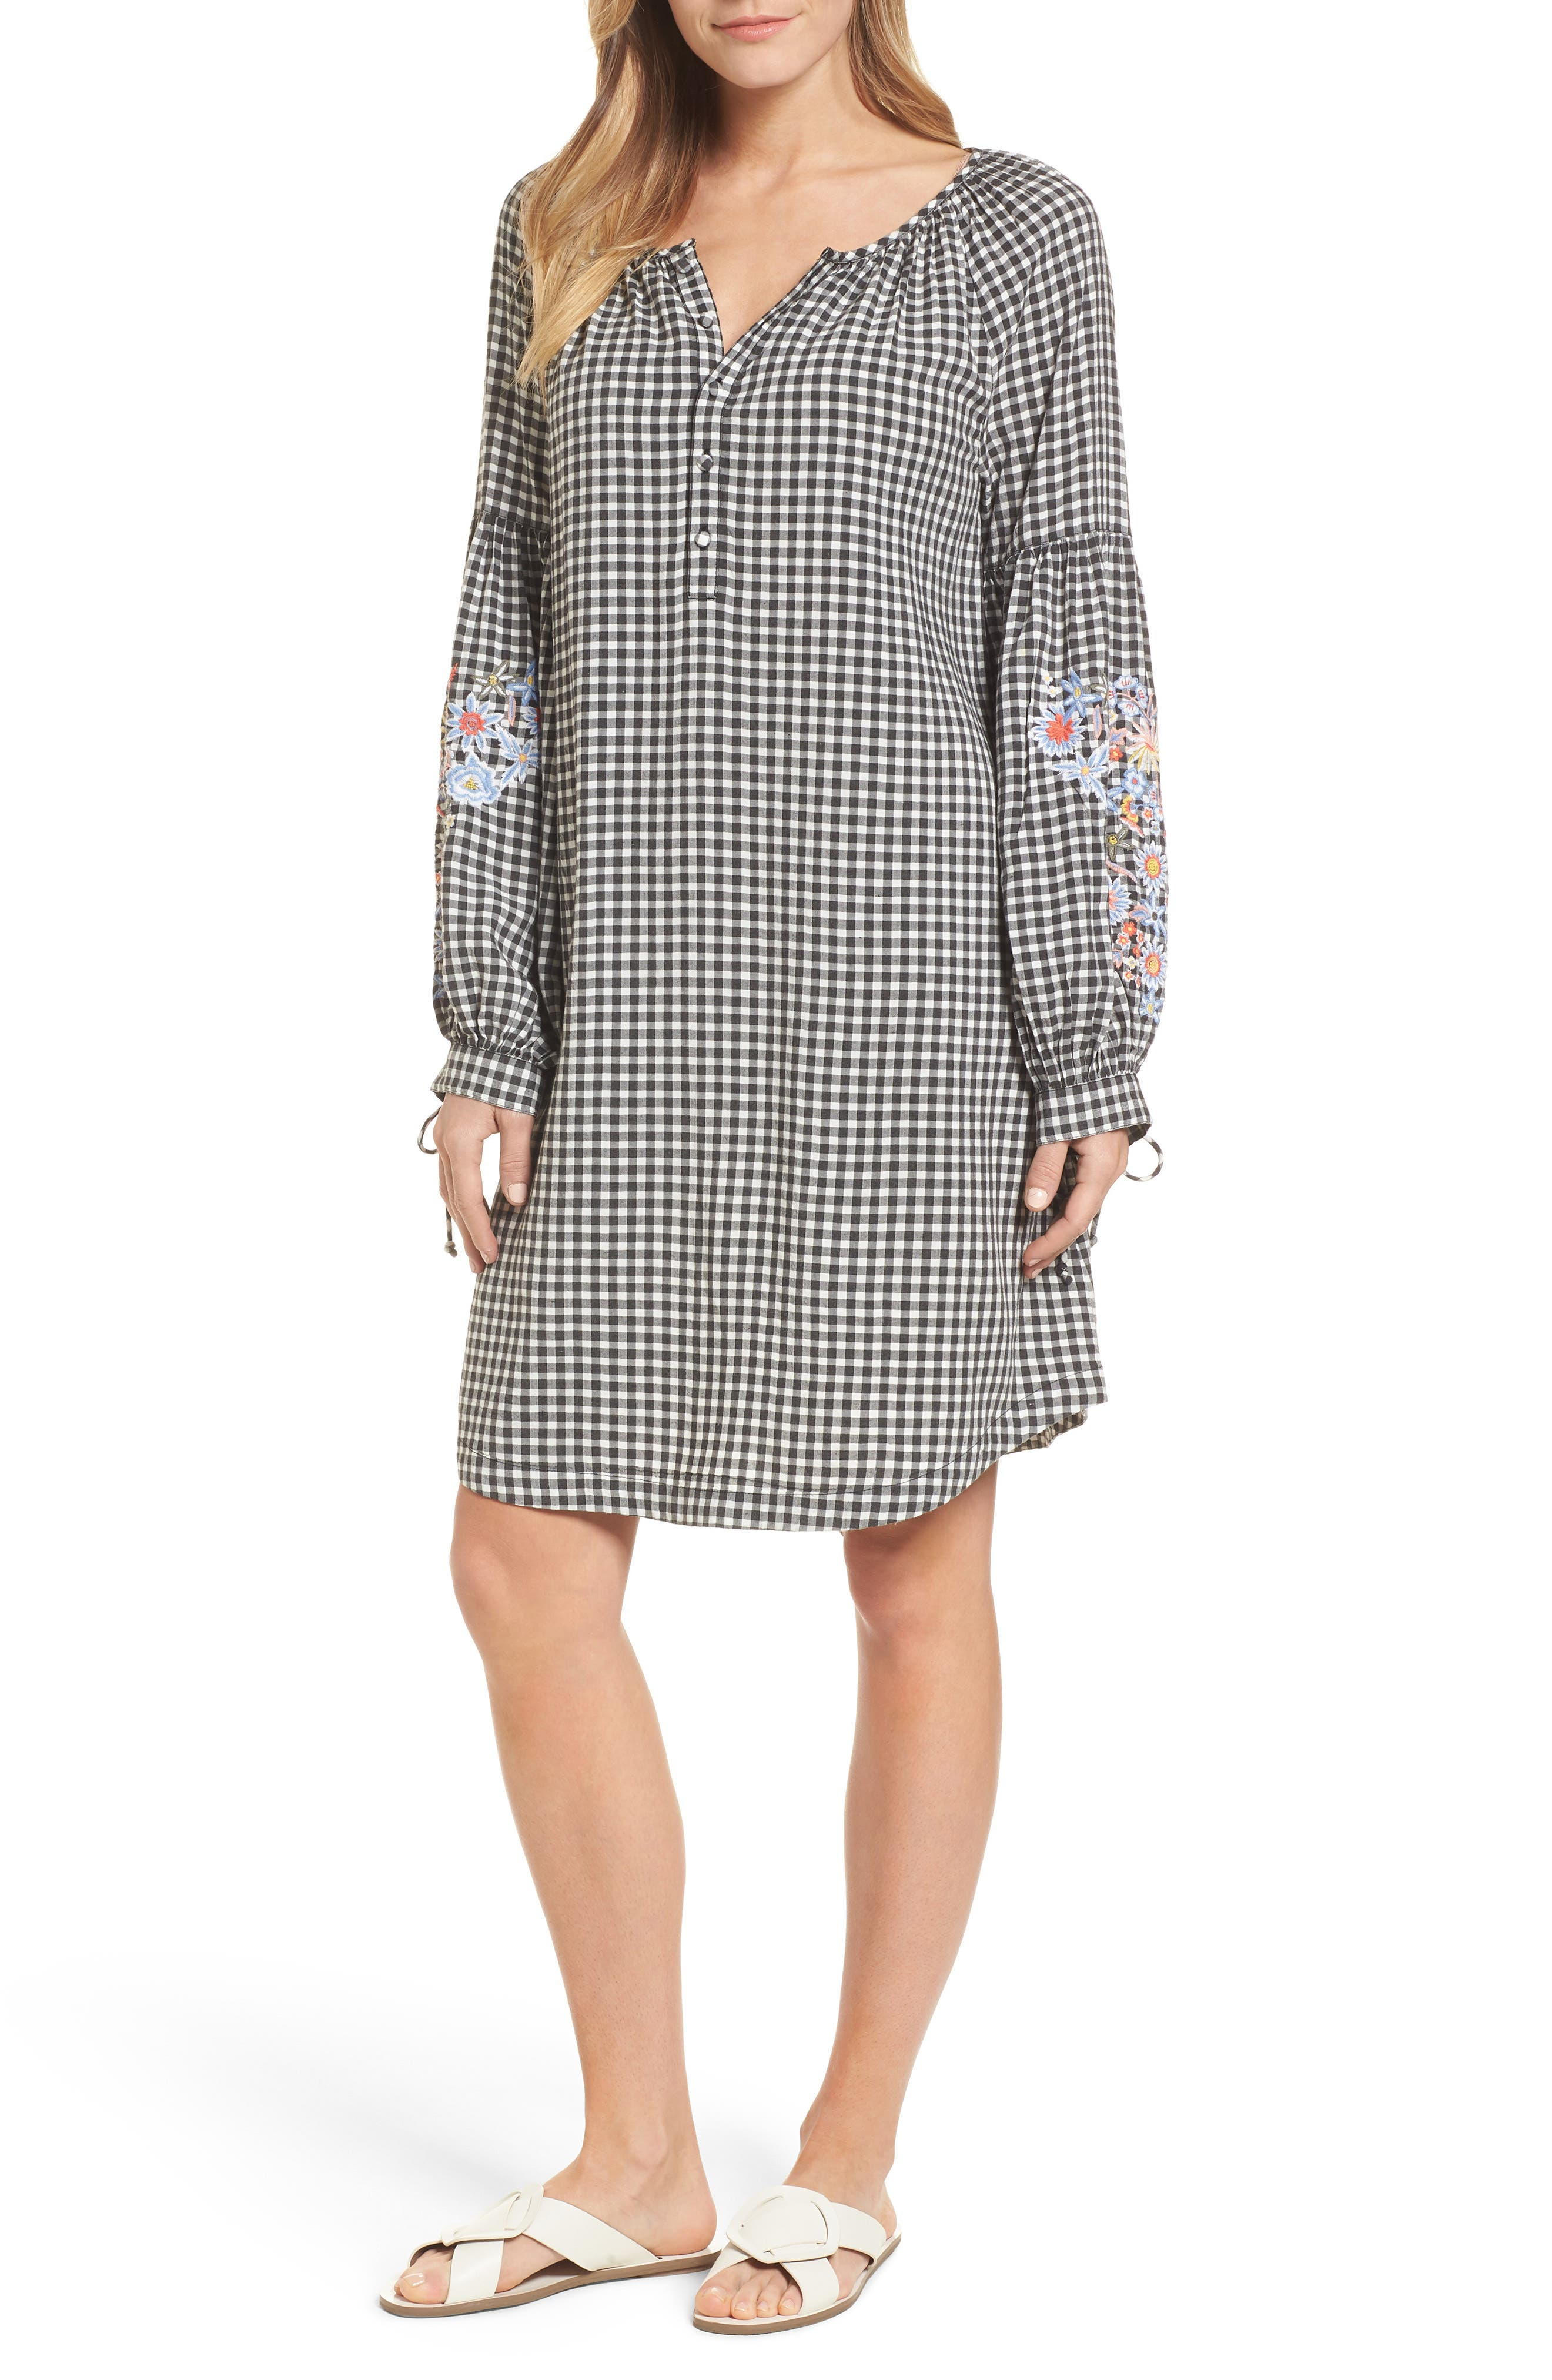 Embroidered Sleeve Shift Dress,                             Main thumbnail 1, color,                             Black-White Gingham